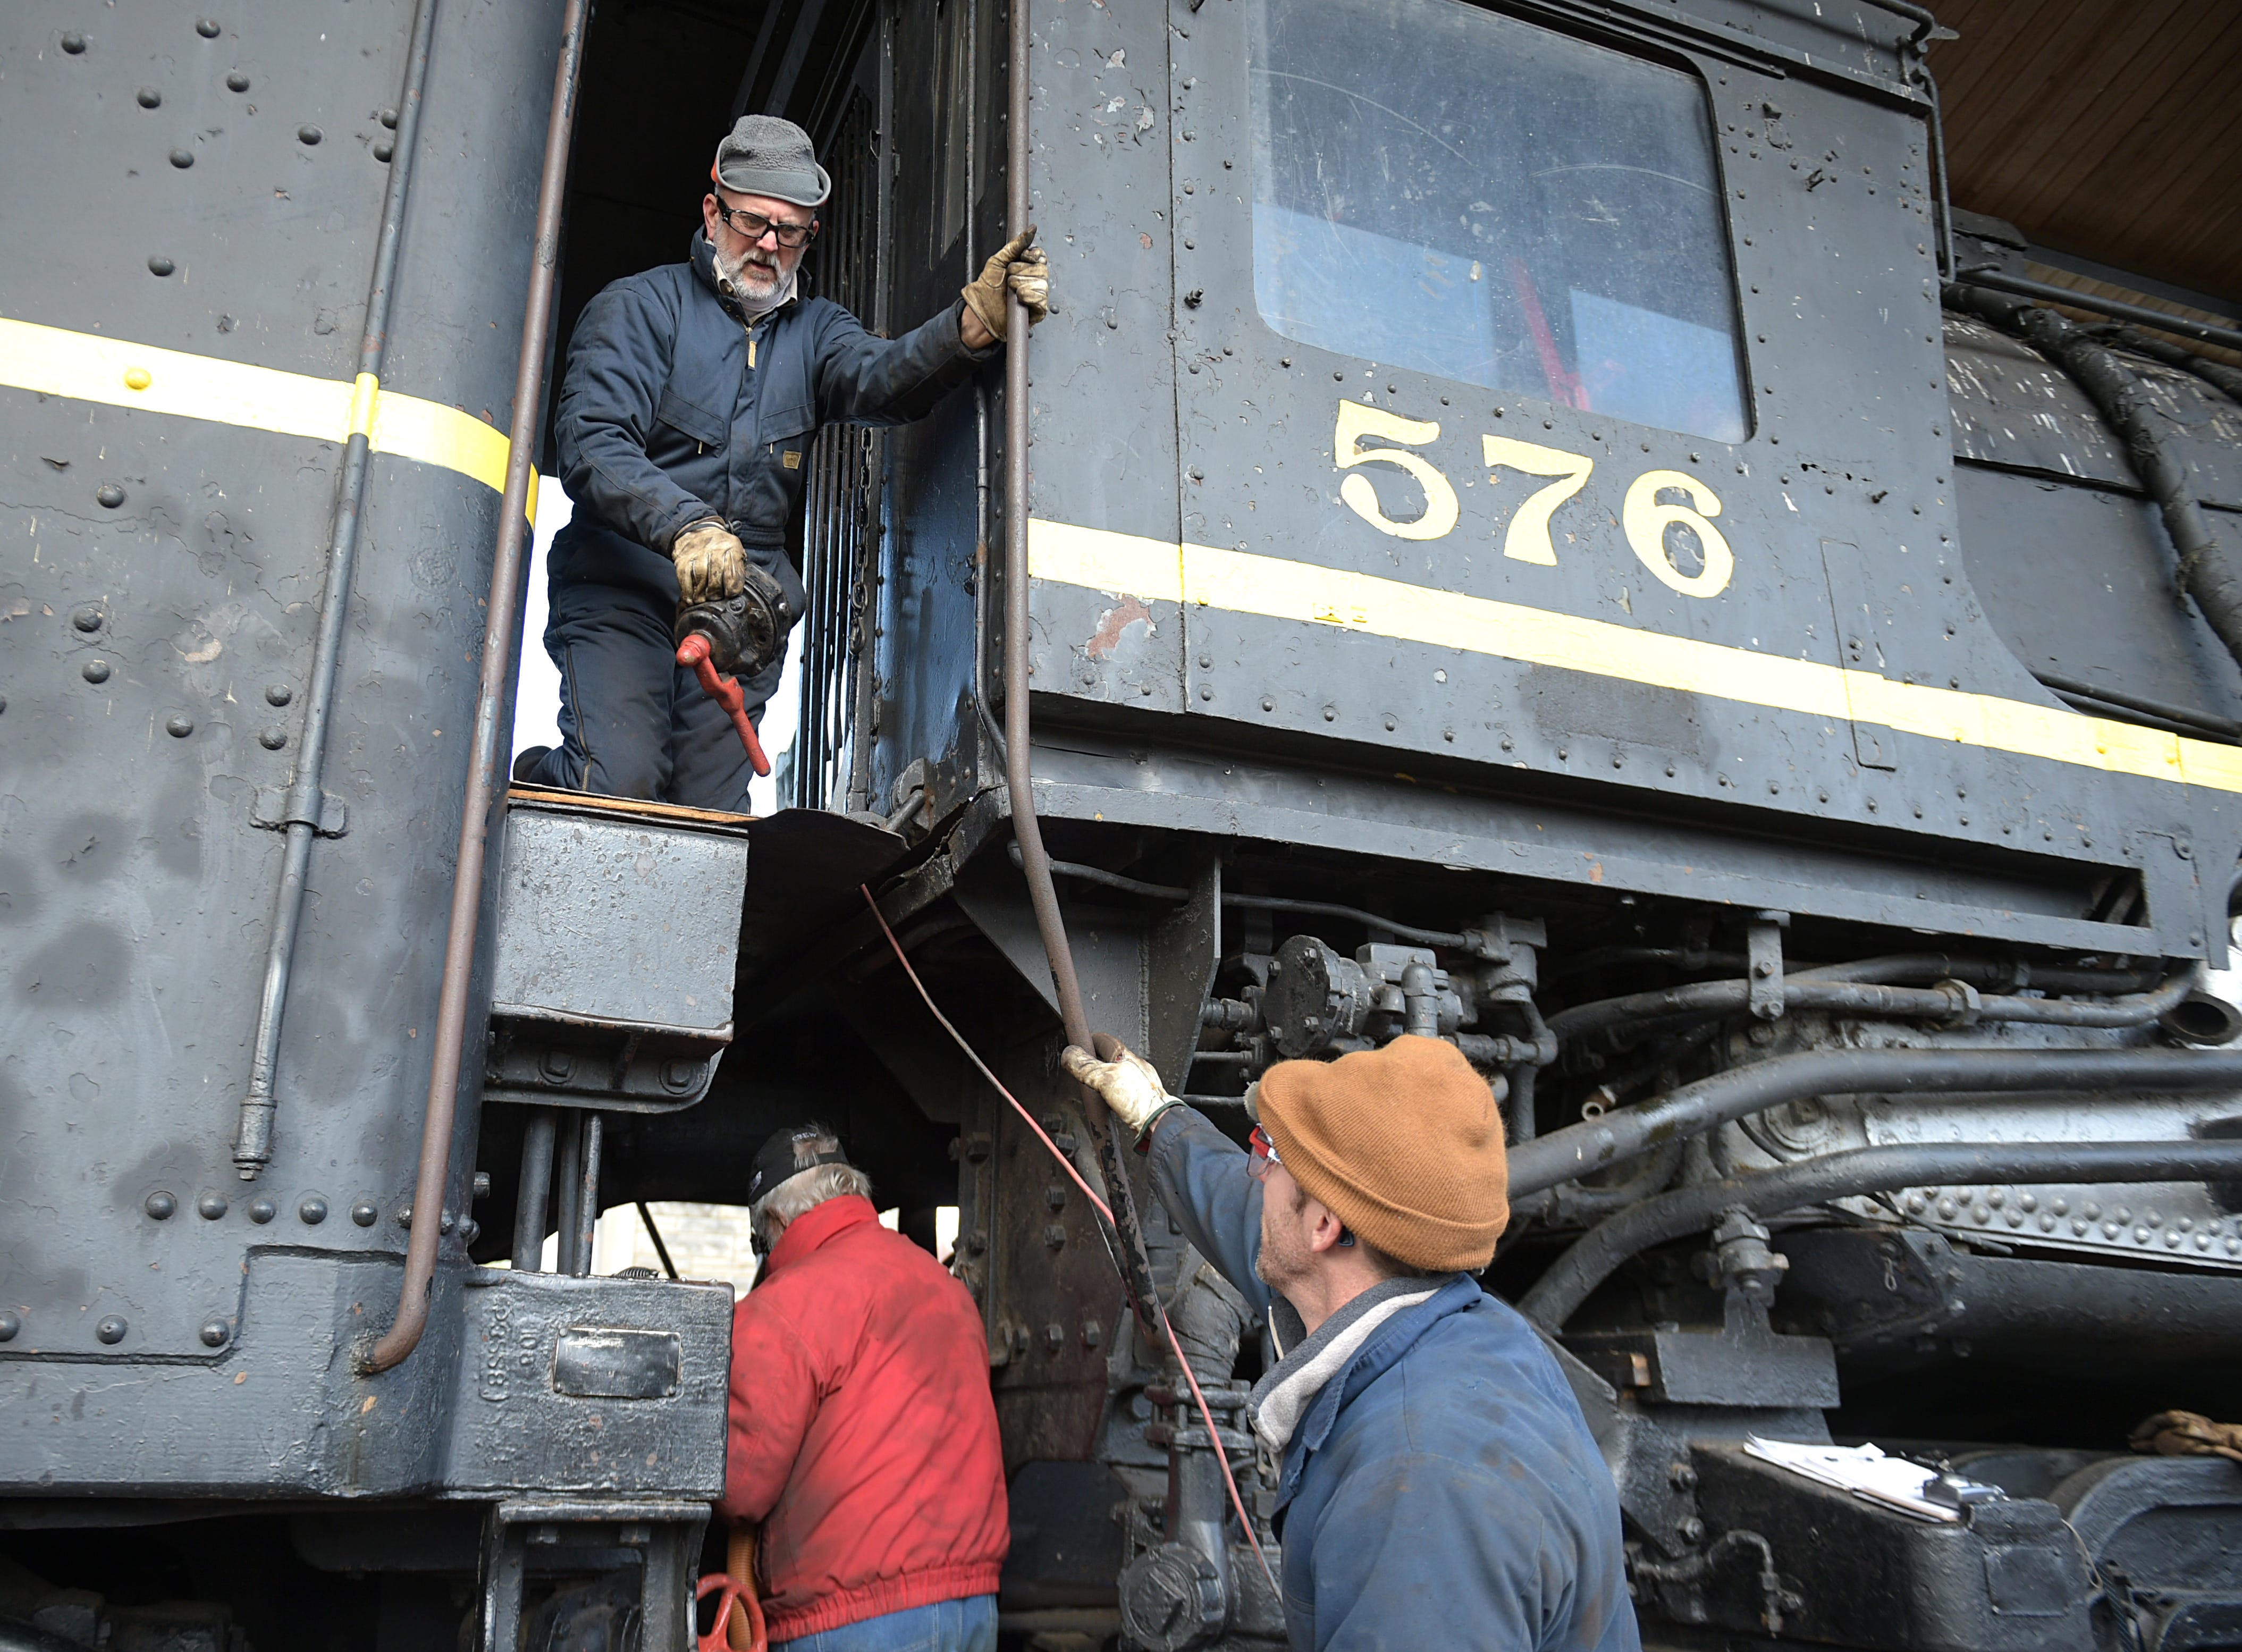 Byrom Stacey and other volunteers works on steam locomotive No. 576 before on Jan. 27, 2017 at Centennial Park where the locomotive has been on display for 65 years.